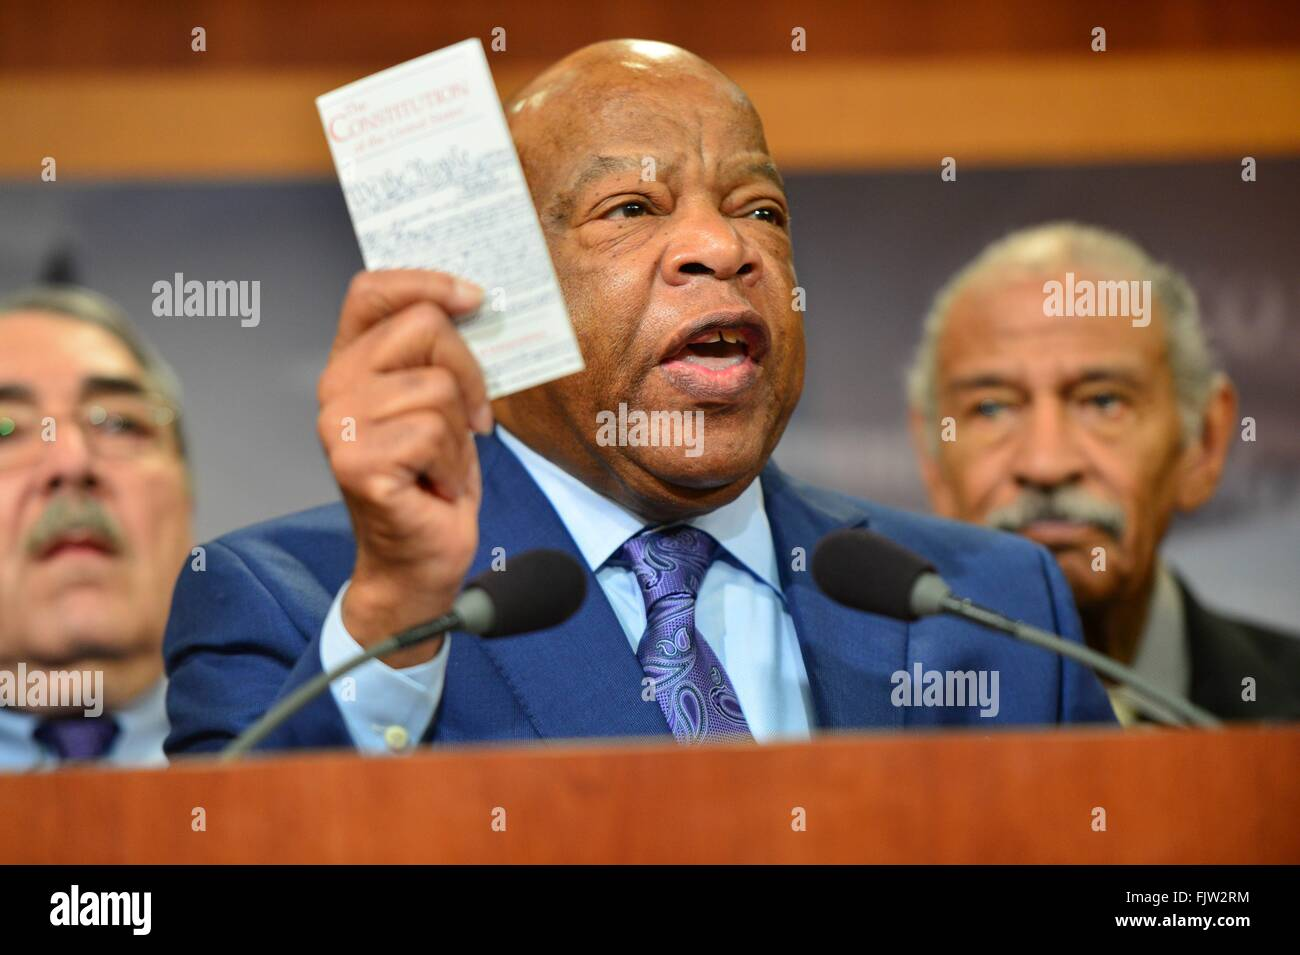 Congressmen and Civil Righs icon, John Lewis holds up a copy of the U.S. Constitution as he joins with Senate Democrats - Stock Image